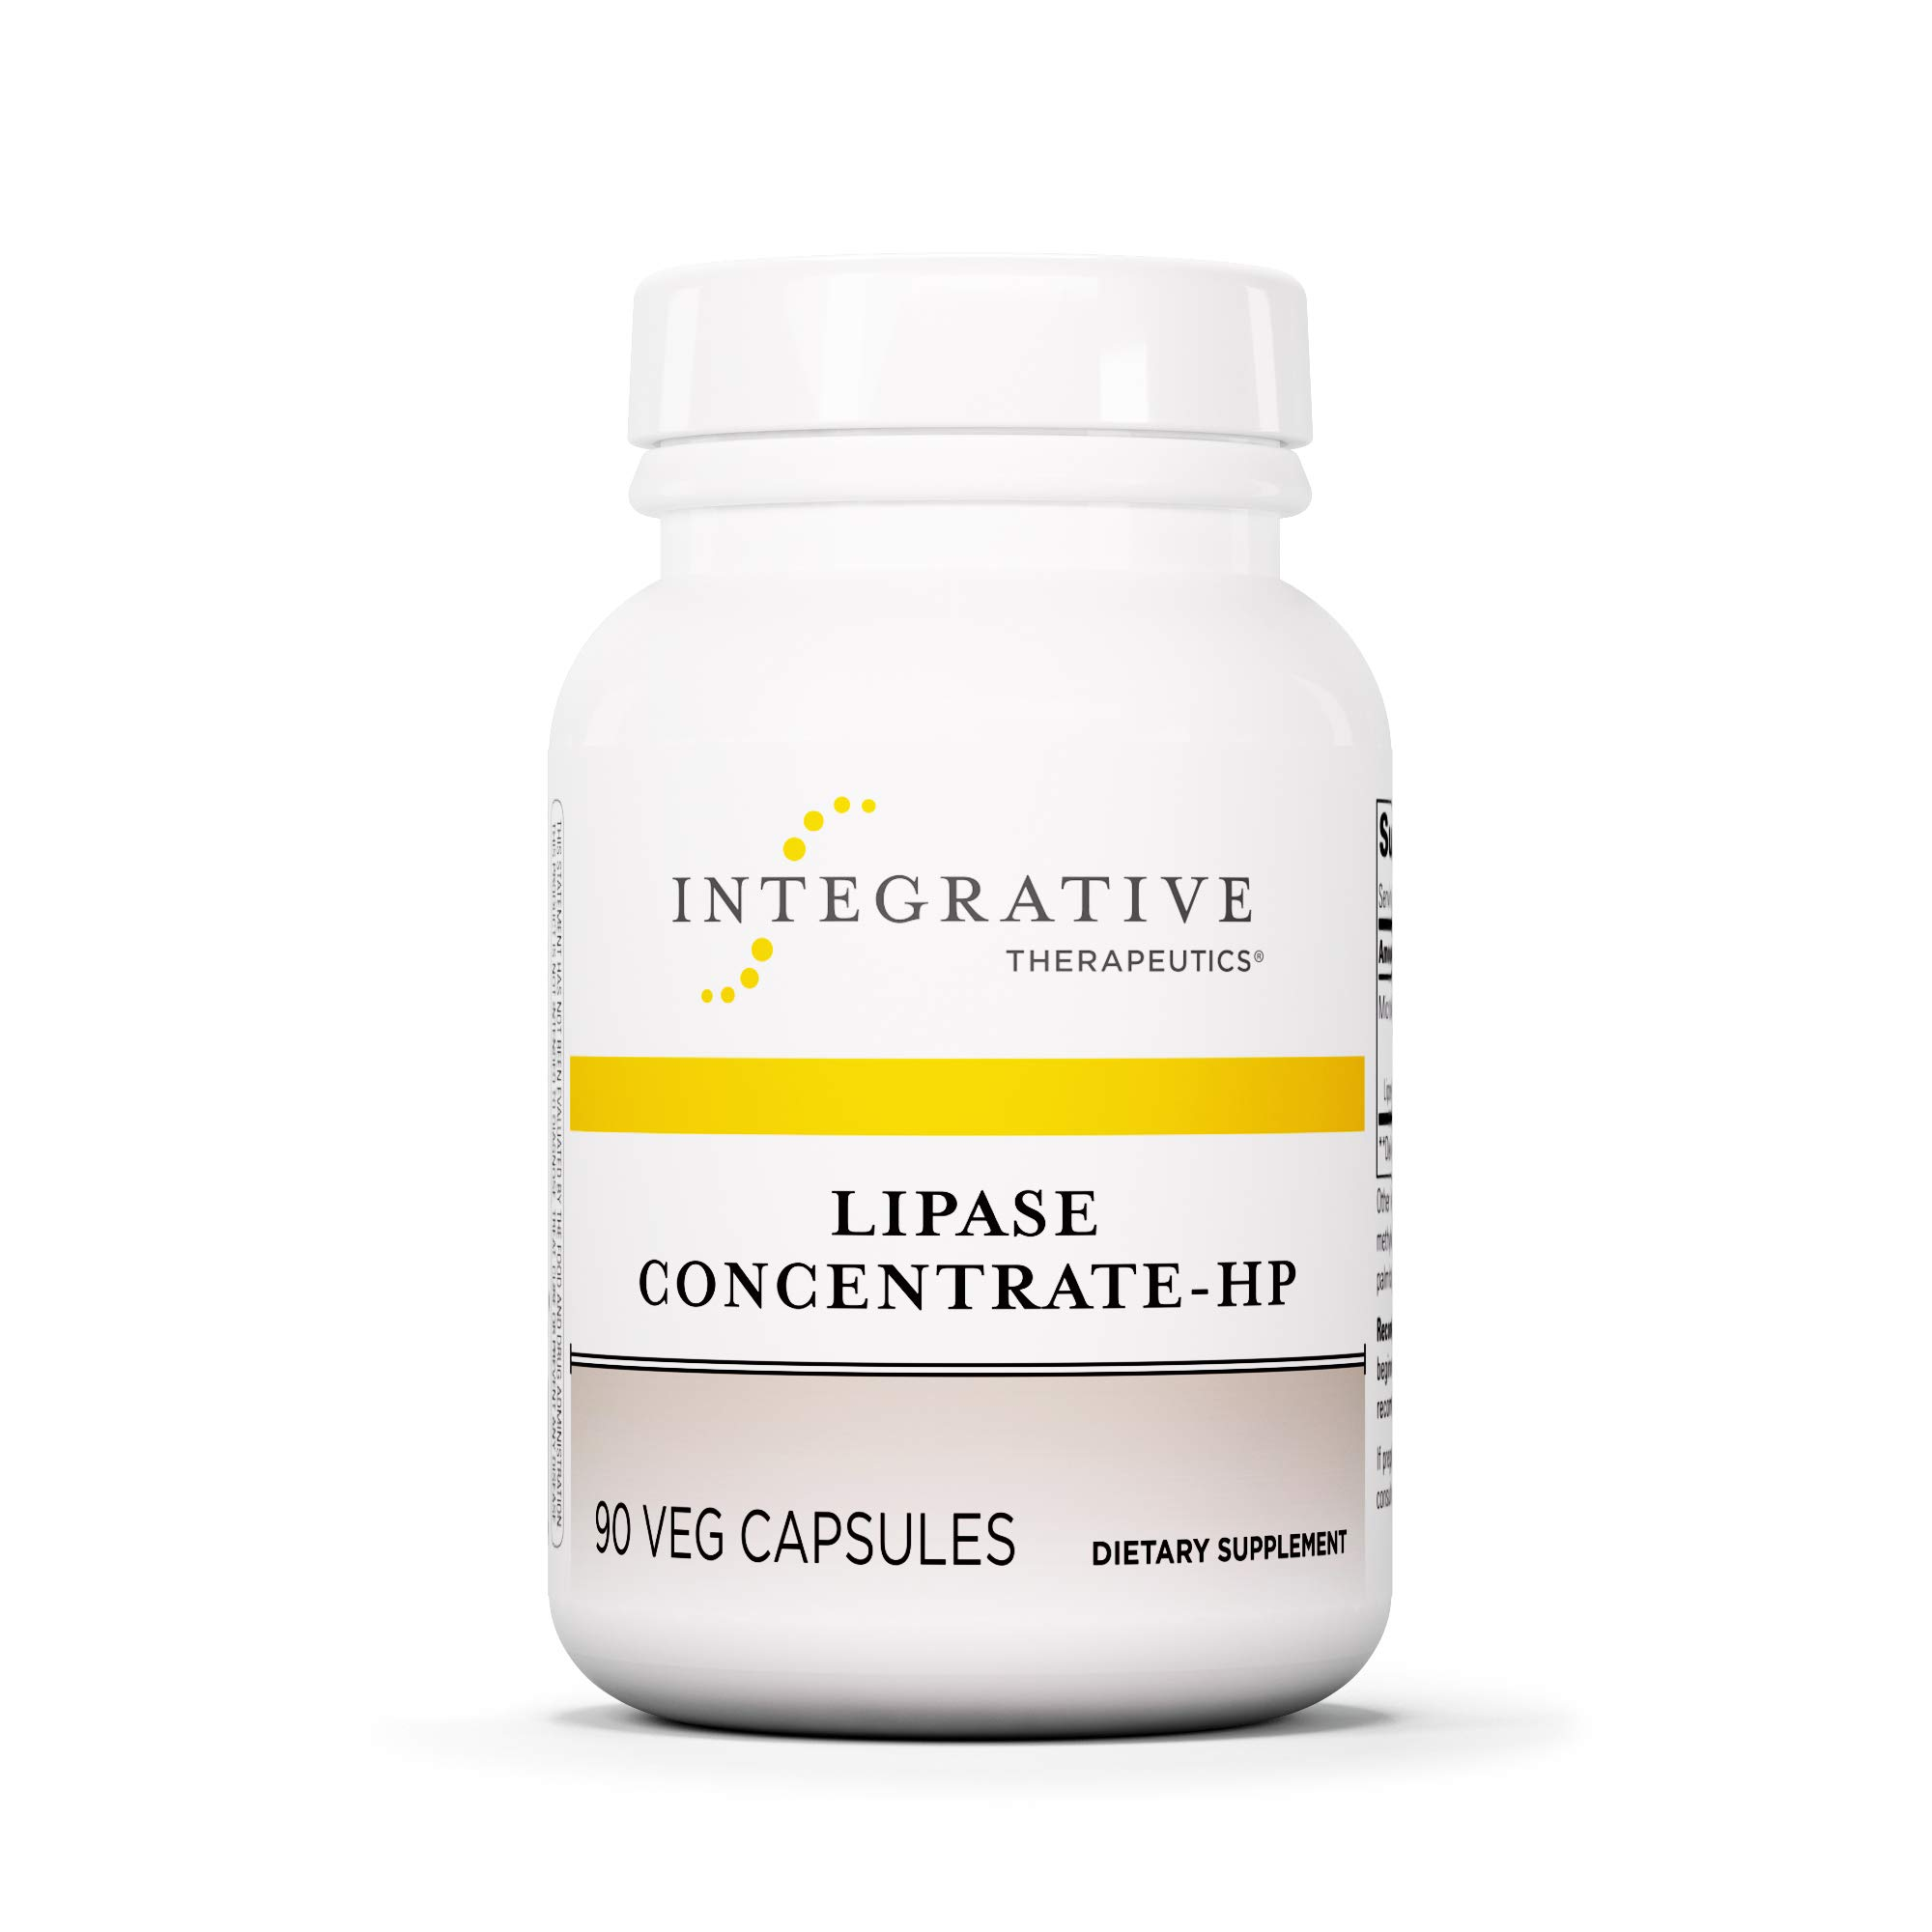 Integrative Therapeutics - Lipase Concentrate-HP - Fat Digestion* Enzyme - Keto and Paleo Friendly - Ideal for Diet High in Fat - Vegan - Vegetable Capsules - 90 Count by Integrative Therapeutics